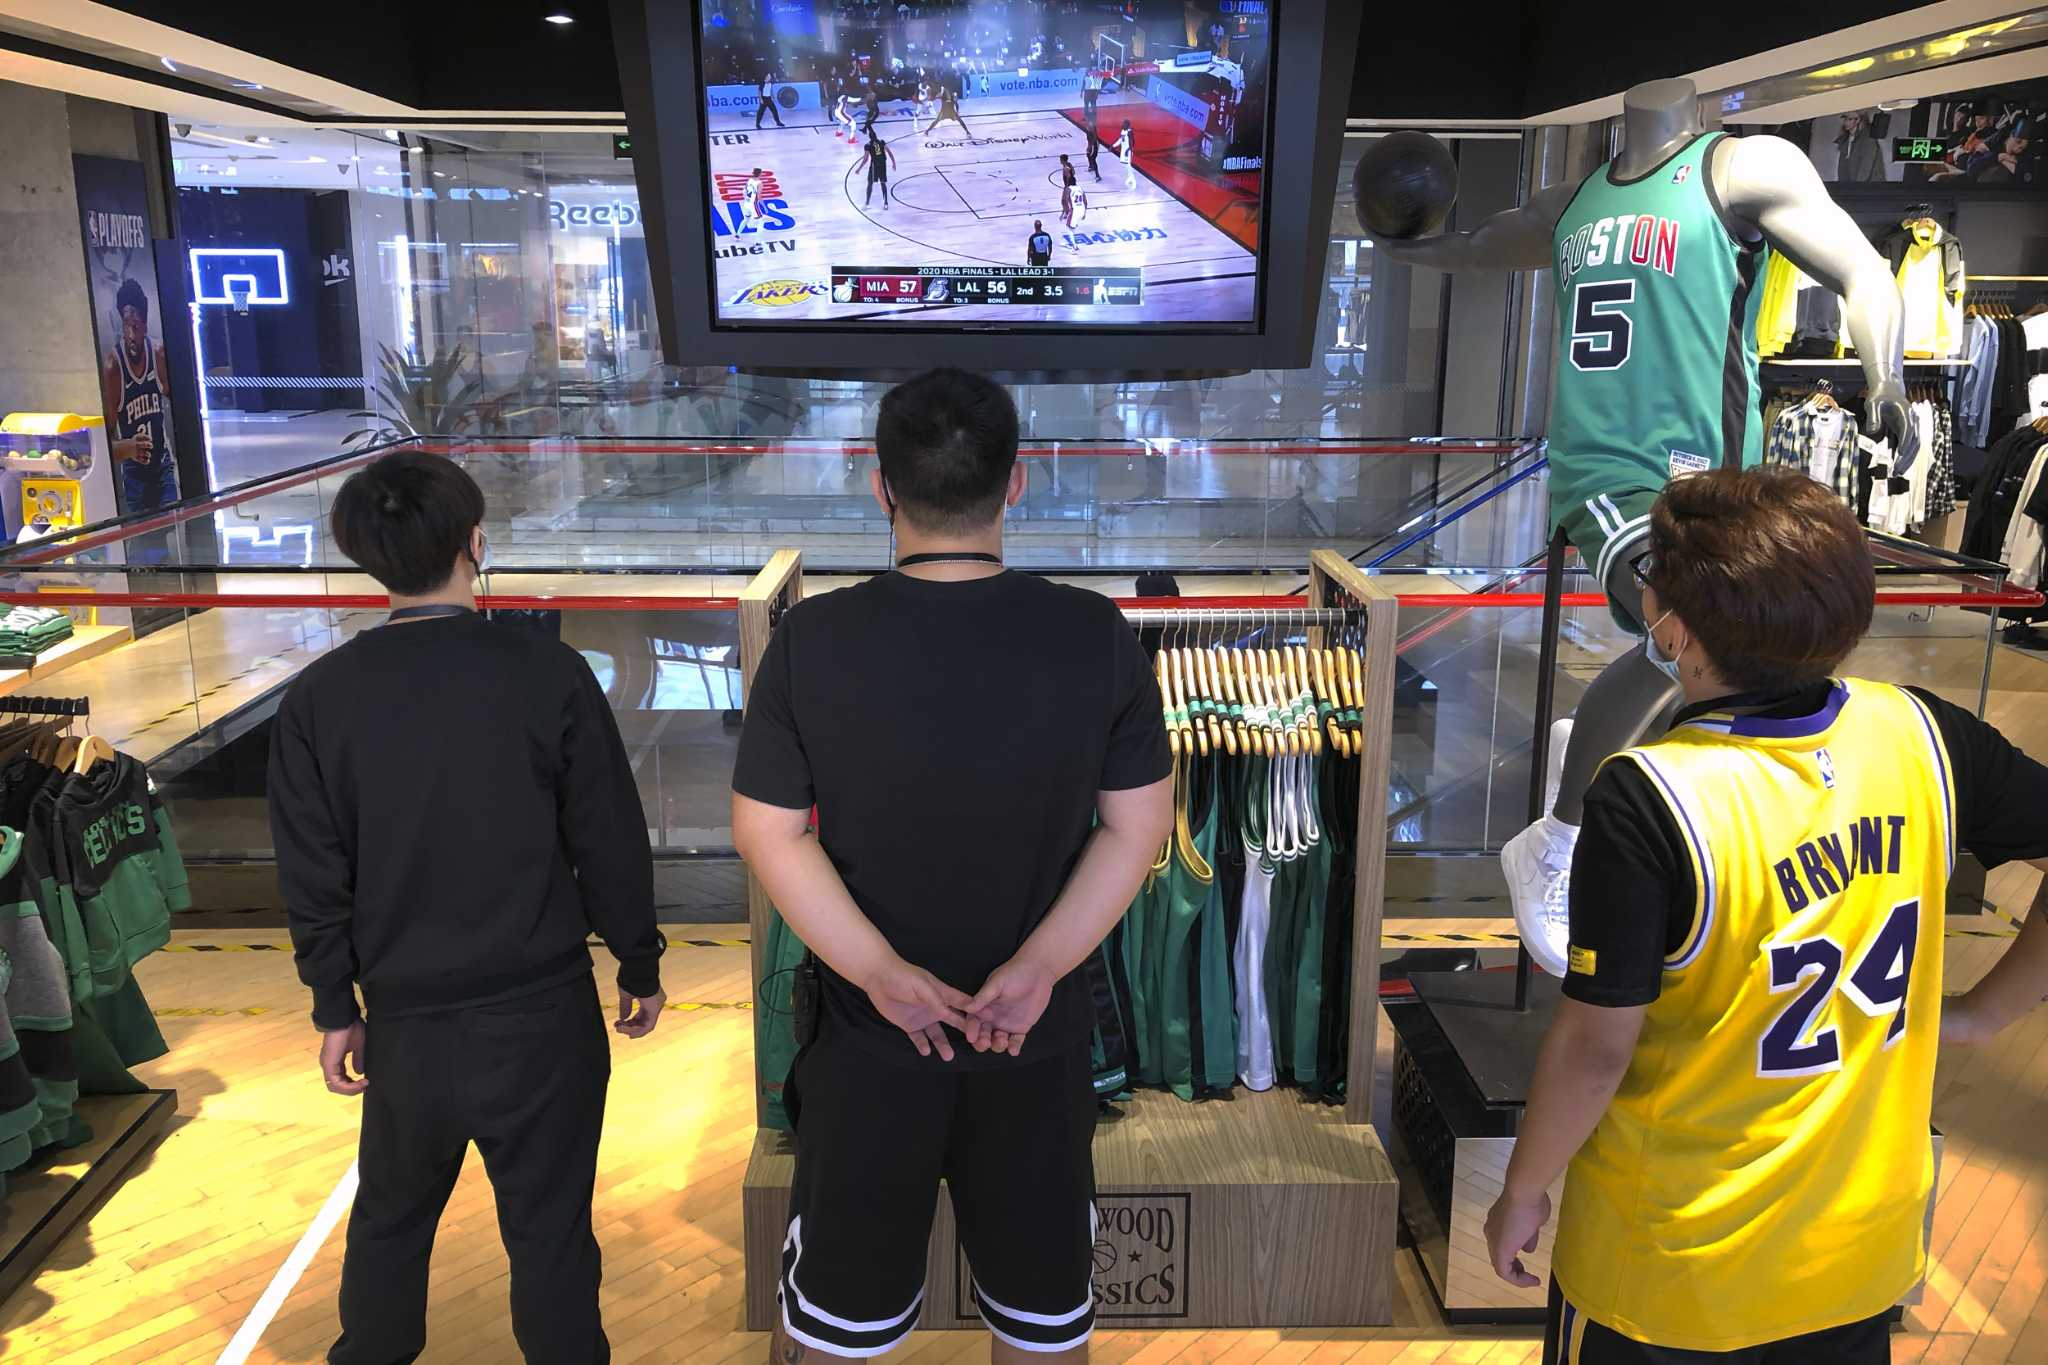 The NBA returns to Chinese state television after a one-year ban